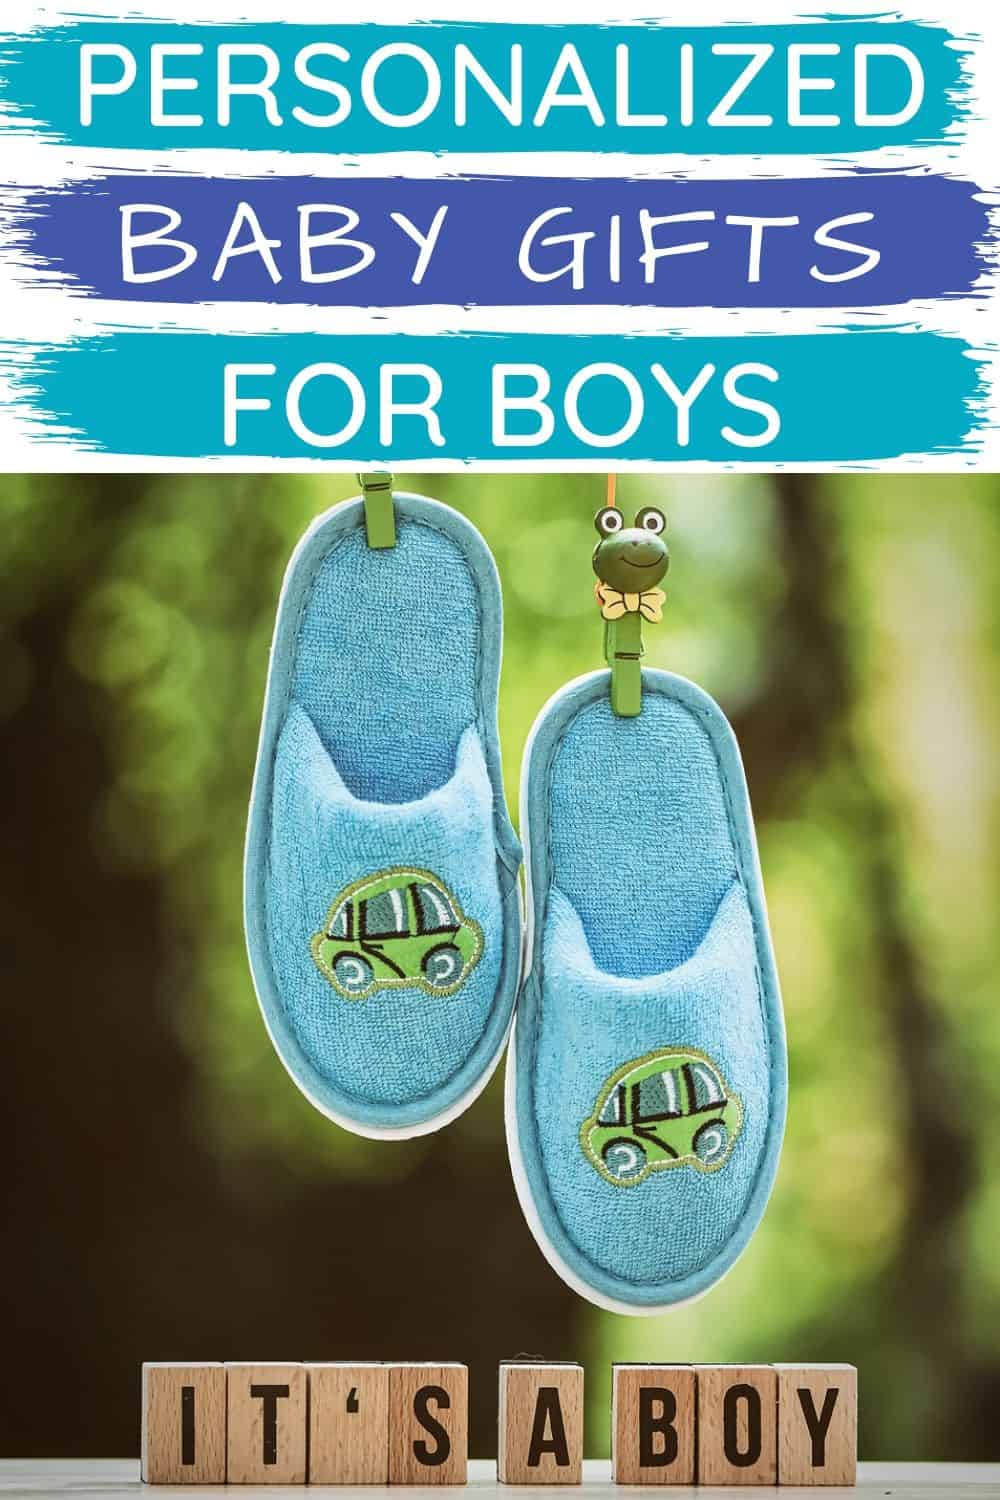 Personalized Baby Gifts for Boys - Baby Boy Gift Ideas